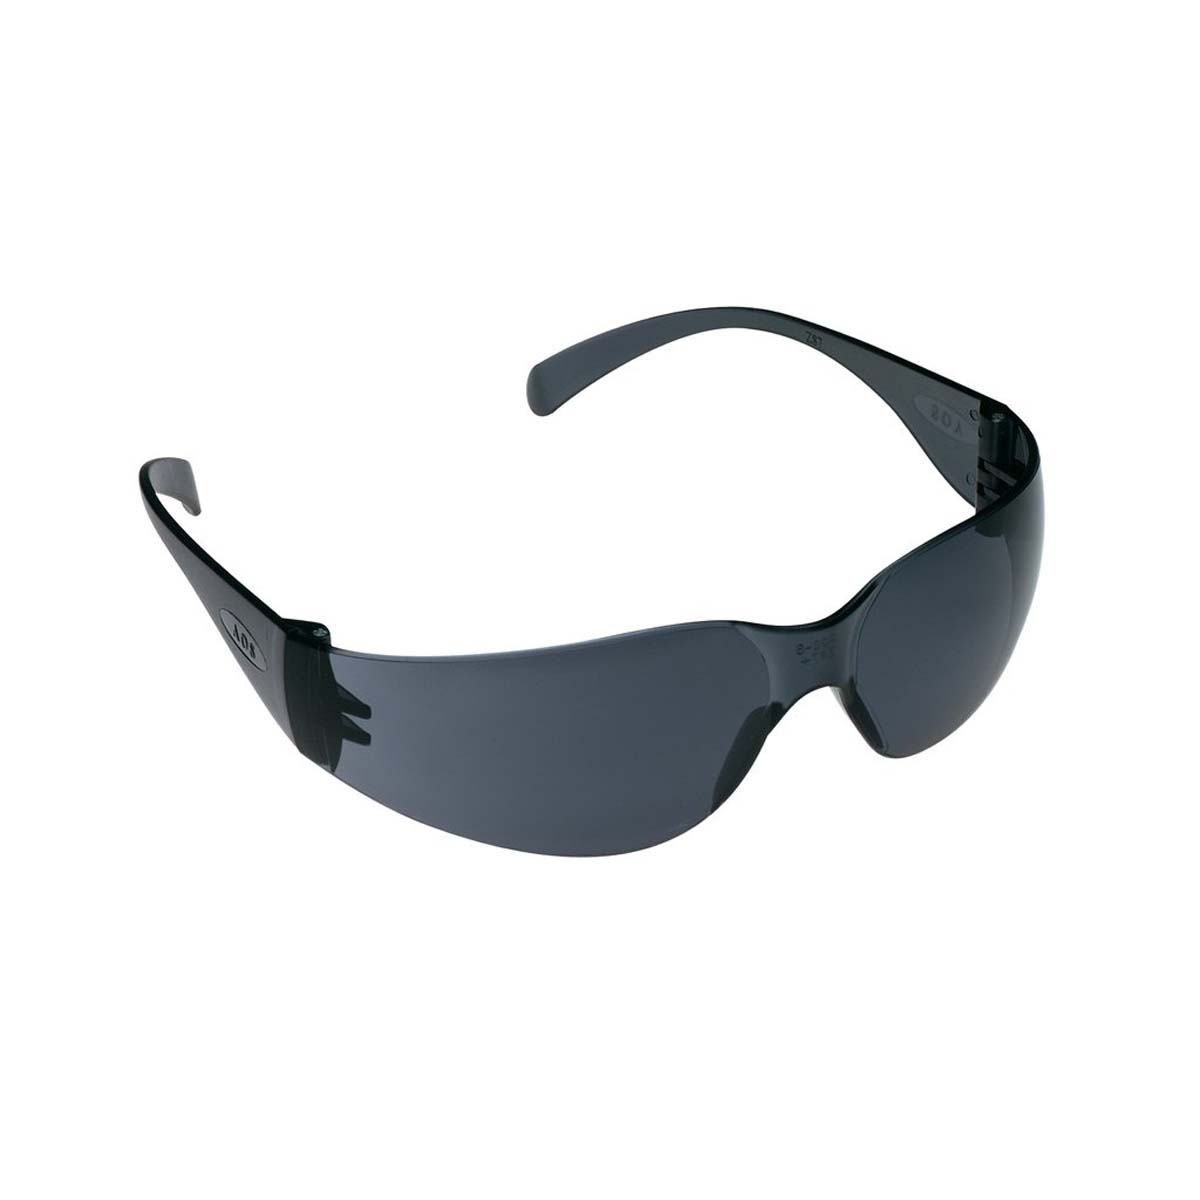 3M Virtua Protective Eyewear 11330-00000-20 Gray Anti-Fog Lens, Gray Temple